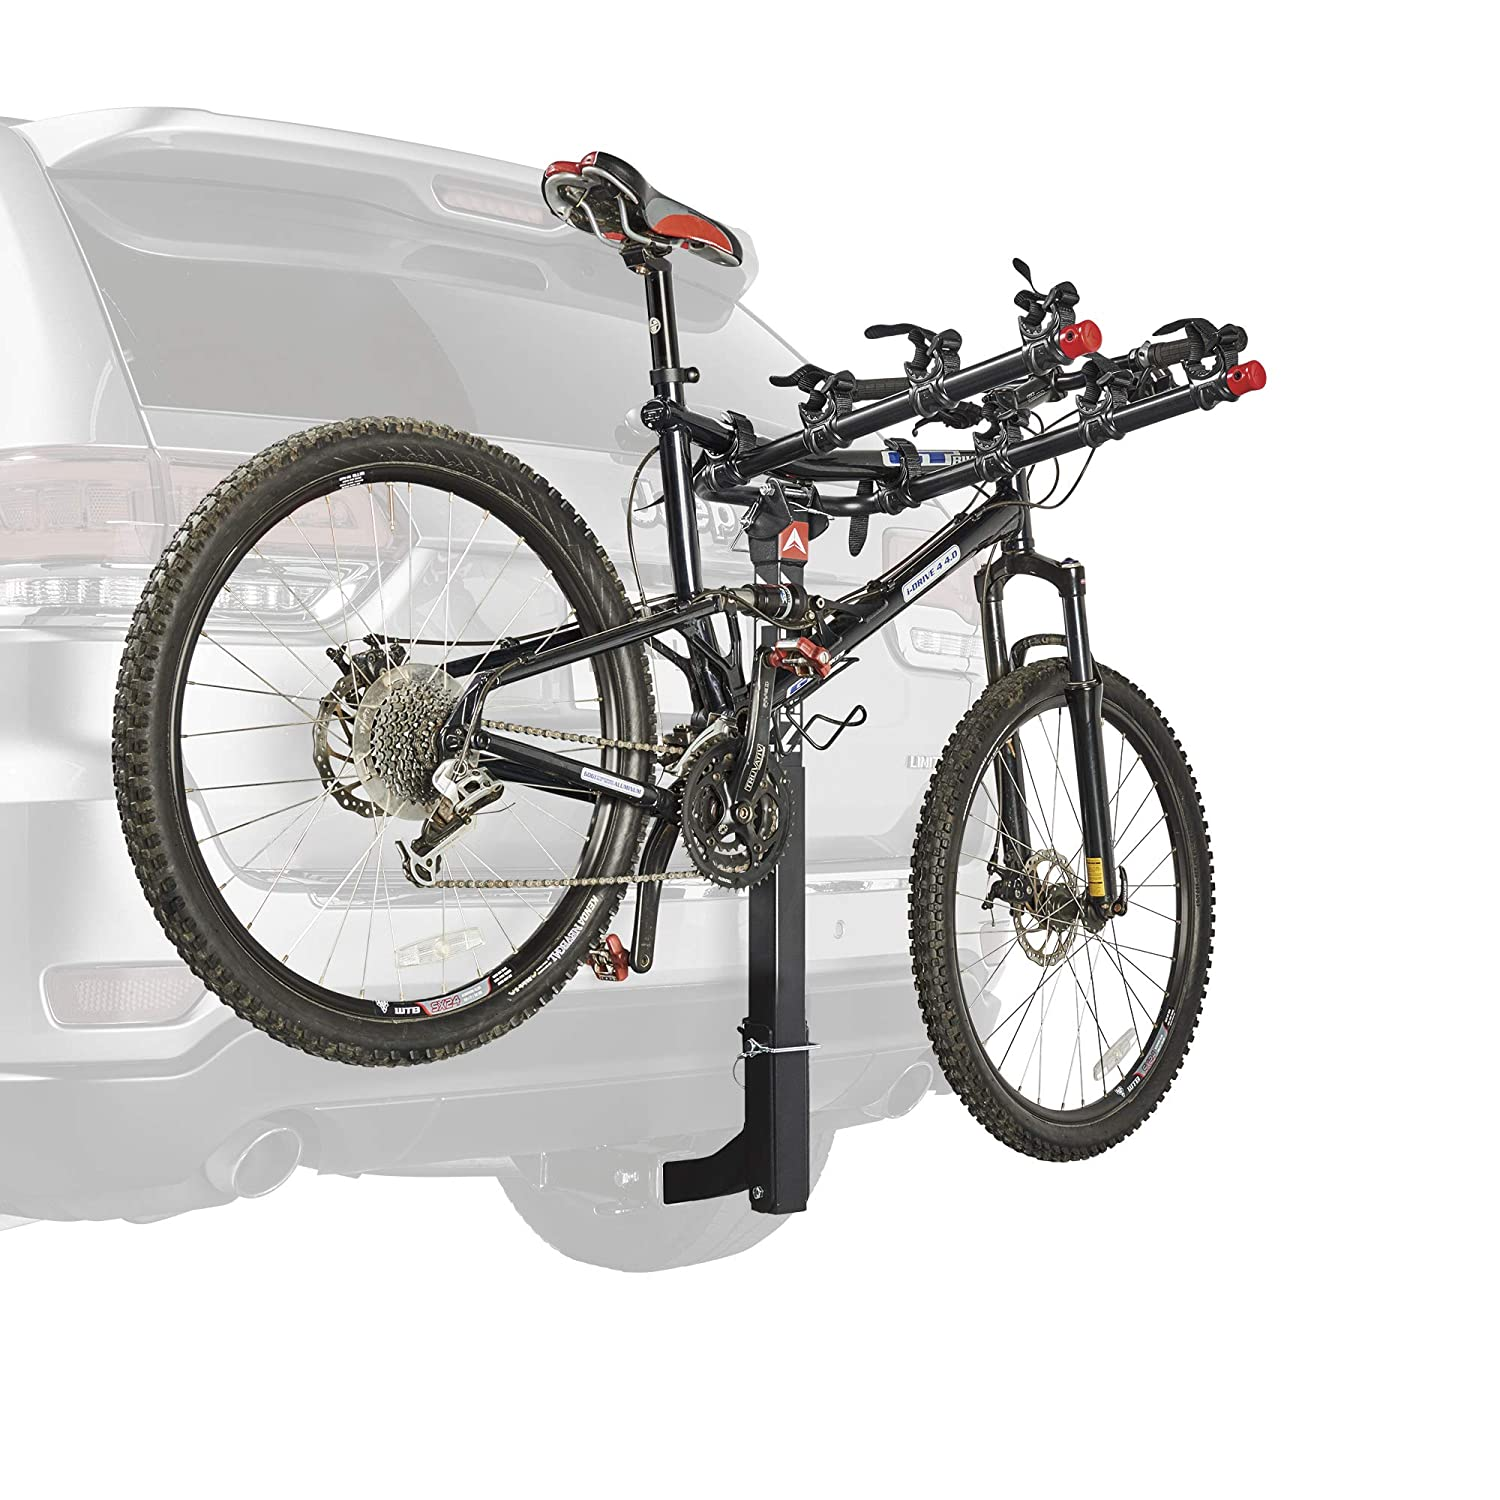 95ff1ab4db2 Amazon.com   Allen Sports Deluxe 4-Bike Hitch Mount Rack with 2-Inch  Receiver   Automotive